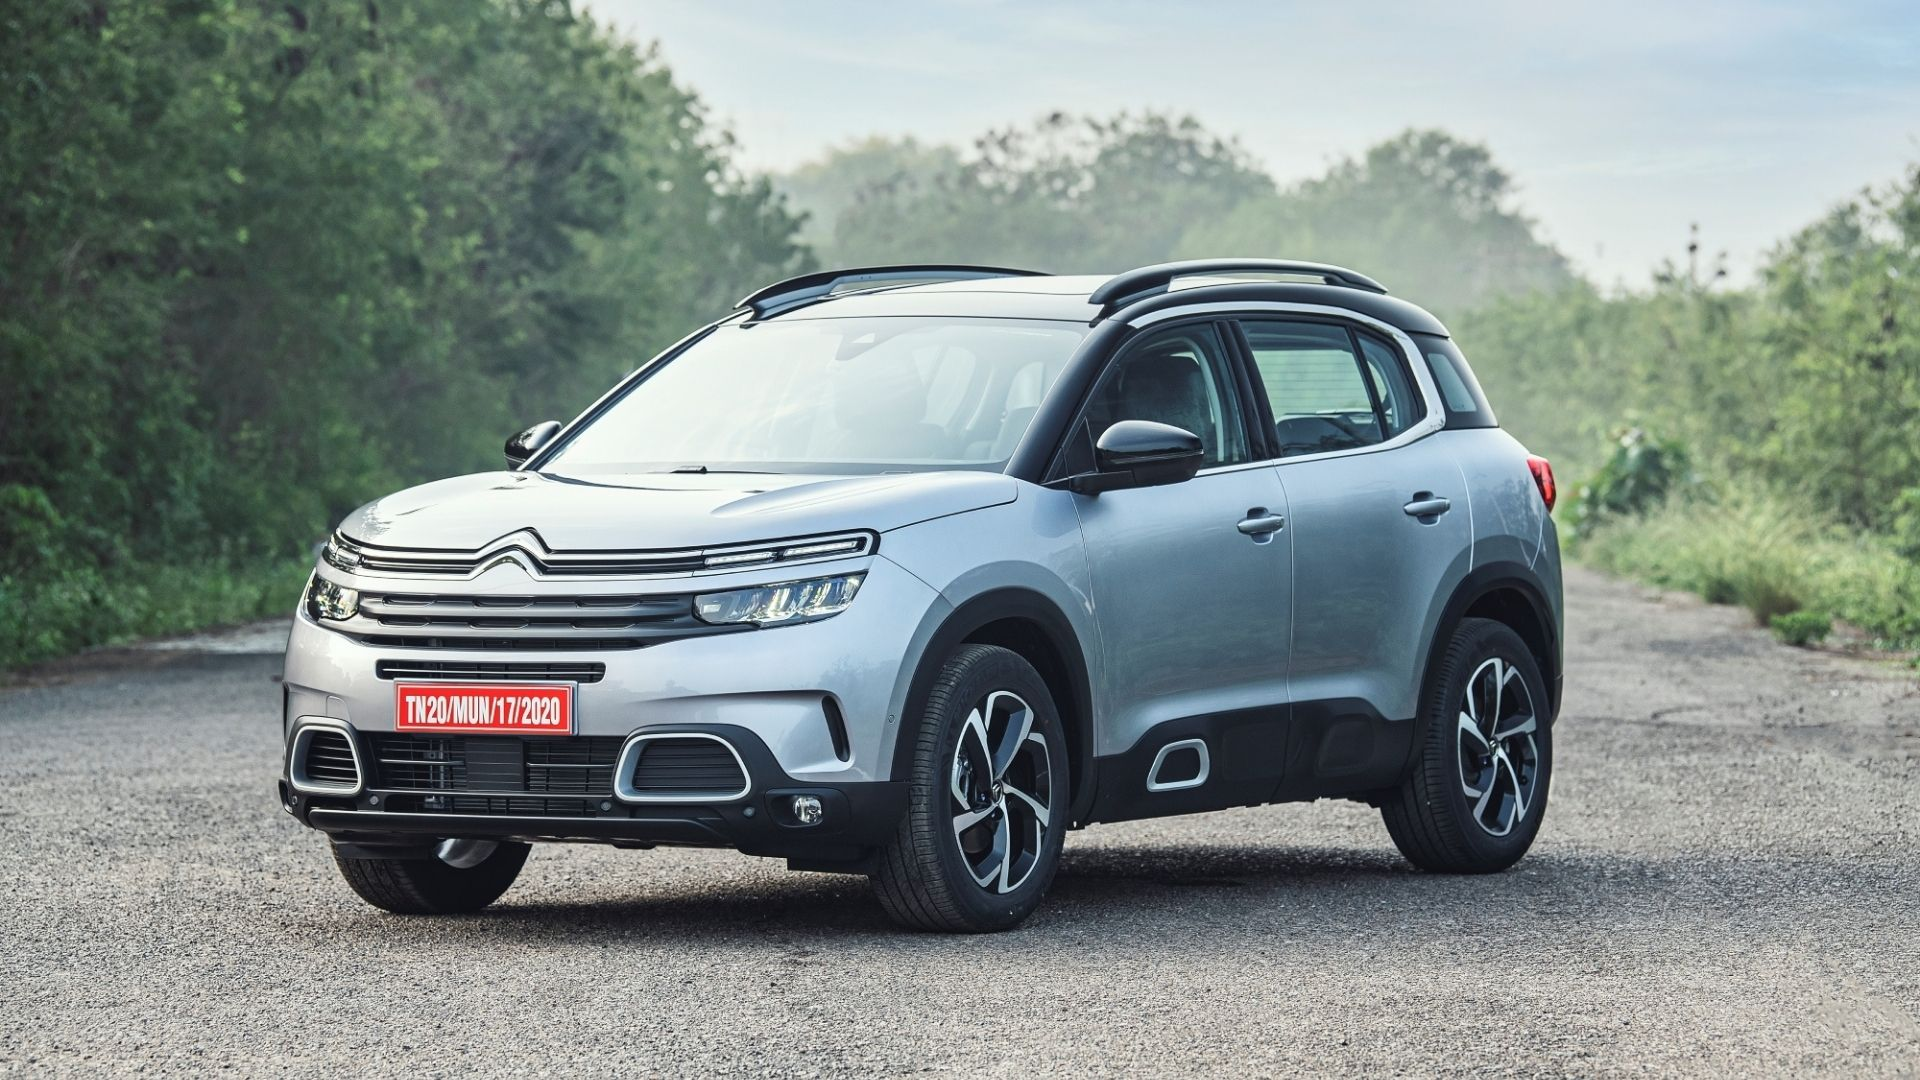 Citroen C5 Aircross Hidden Attributes You Need To Know